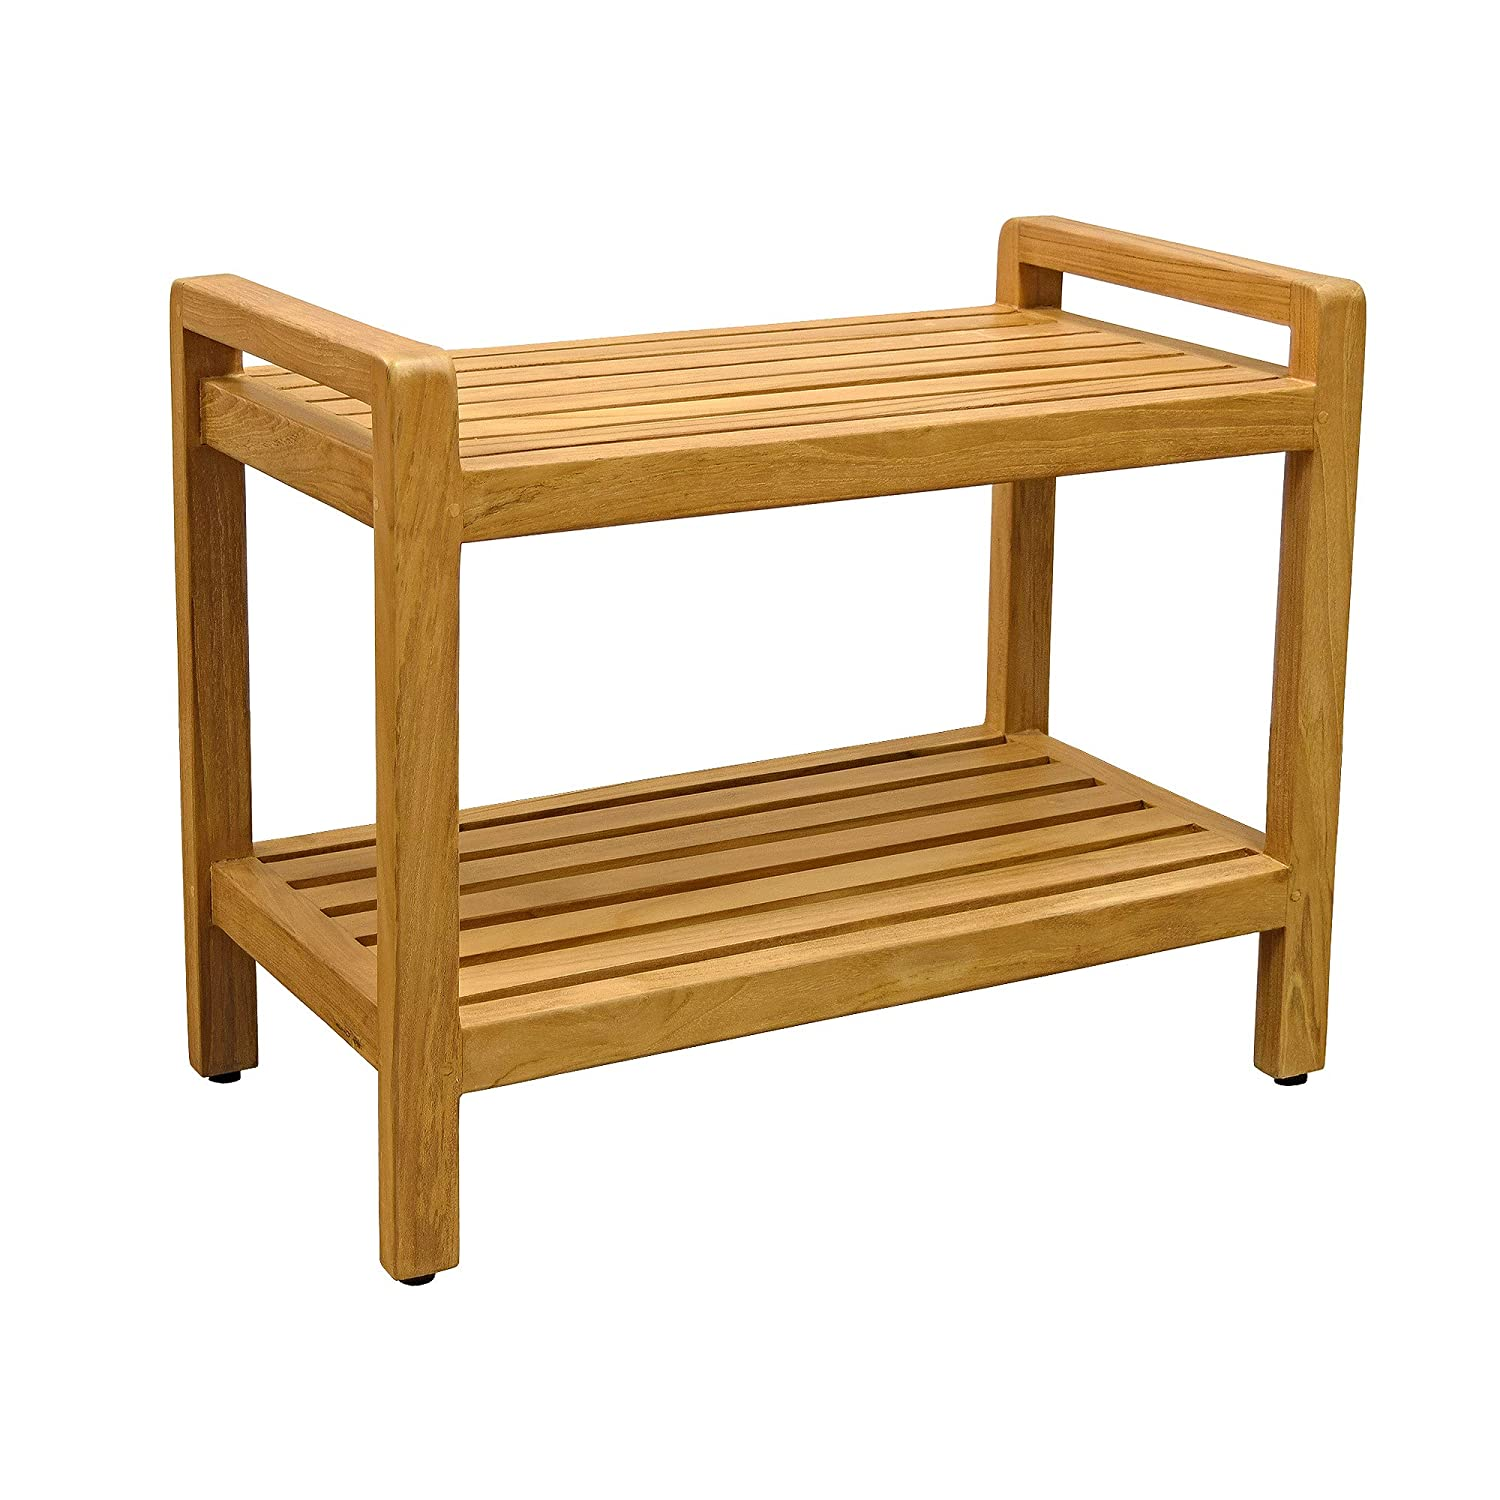 Asta Spa Teak Shower/Bath Bench with Arms and Bottom Shelf, Amati 81Hjgz6tvtL._SL1500_